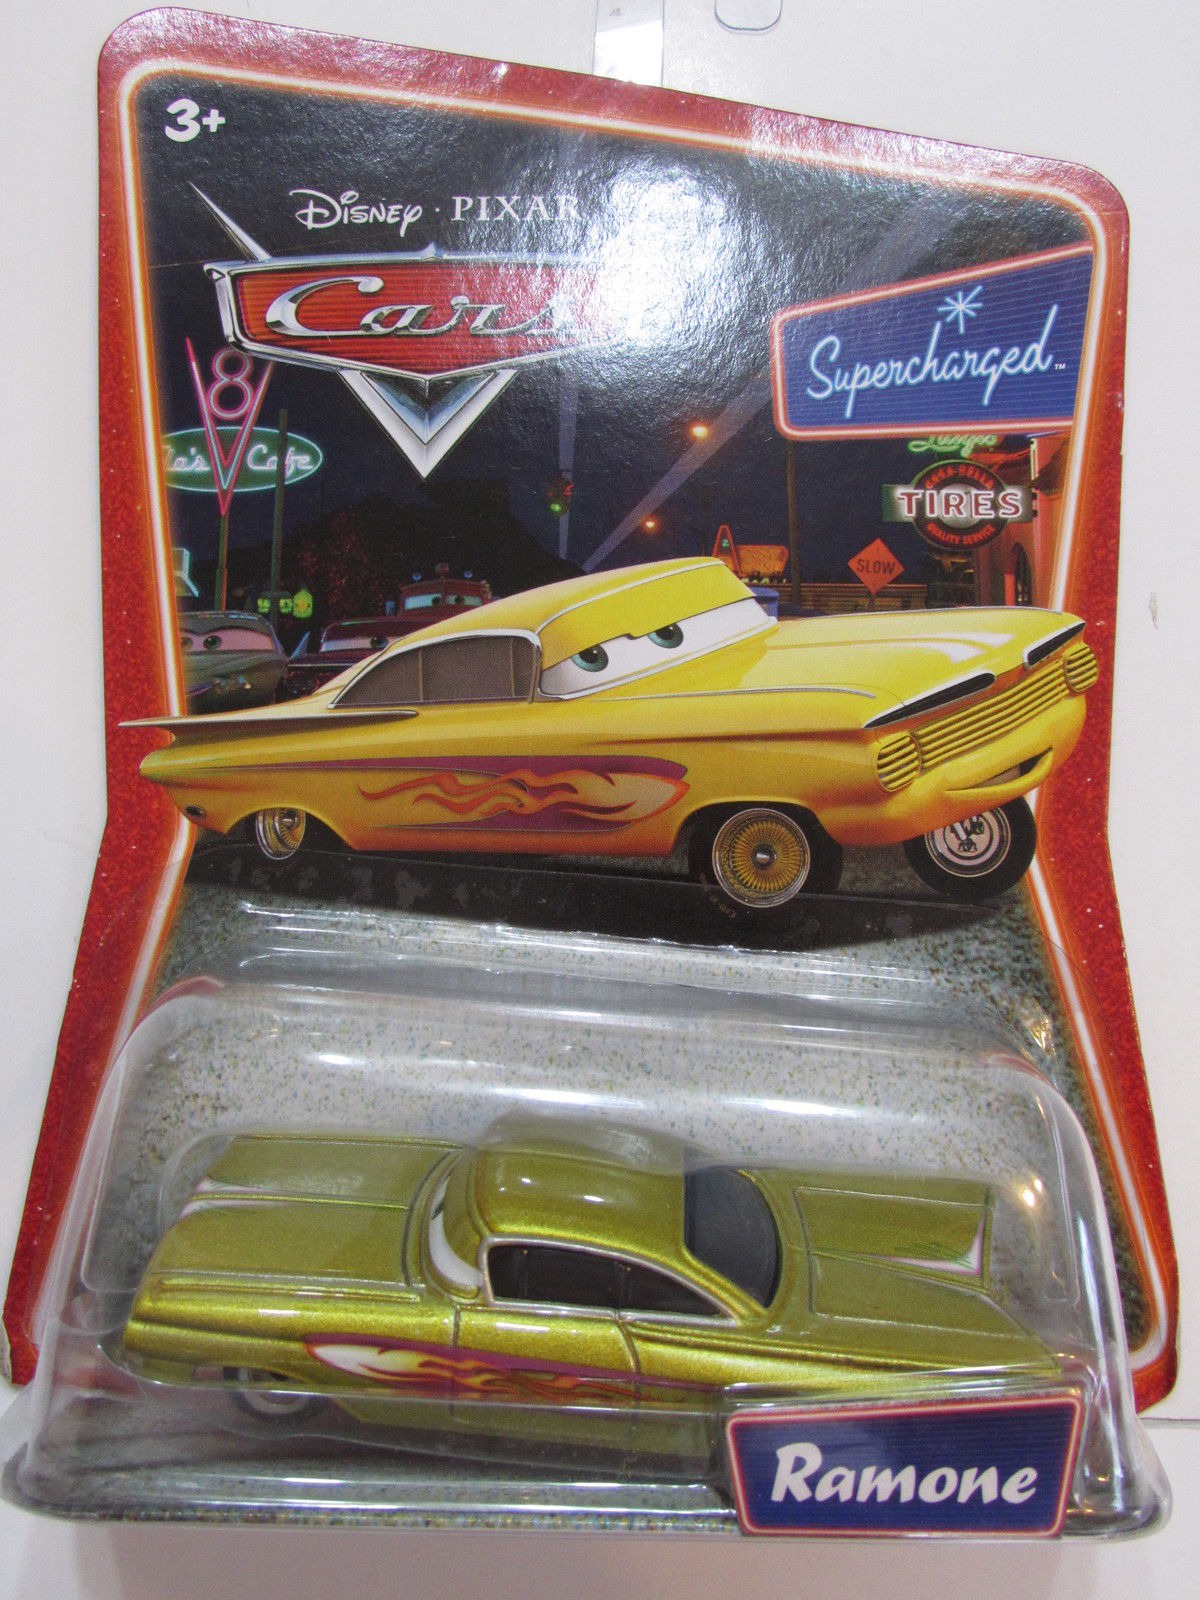 DISNEY PIXAR CARS SUPERCHARGED - RAMONE